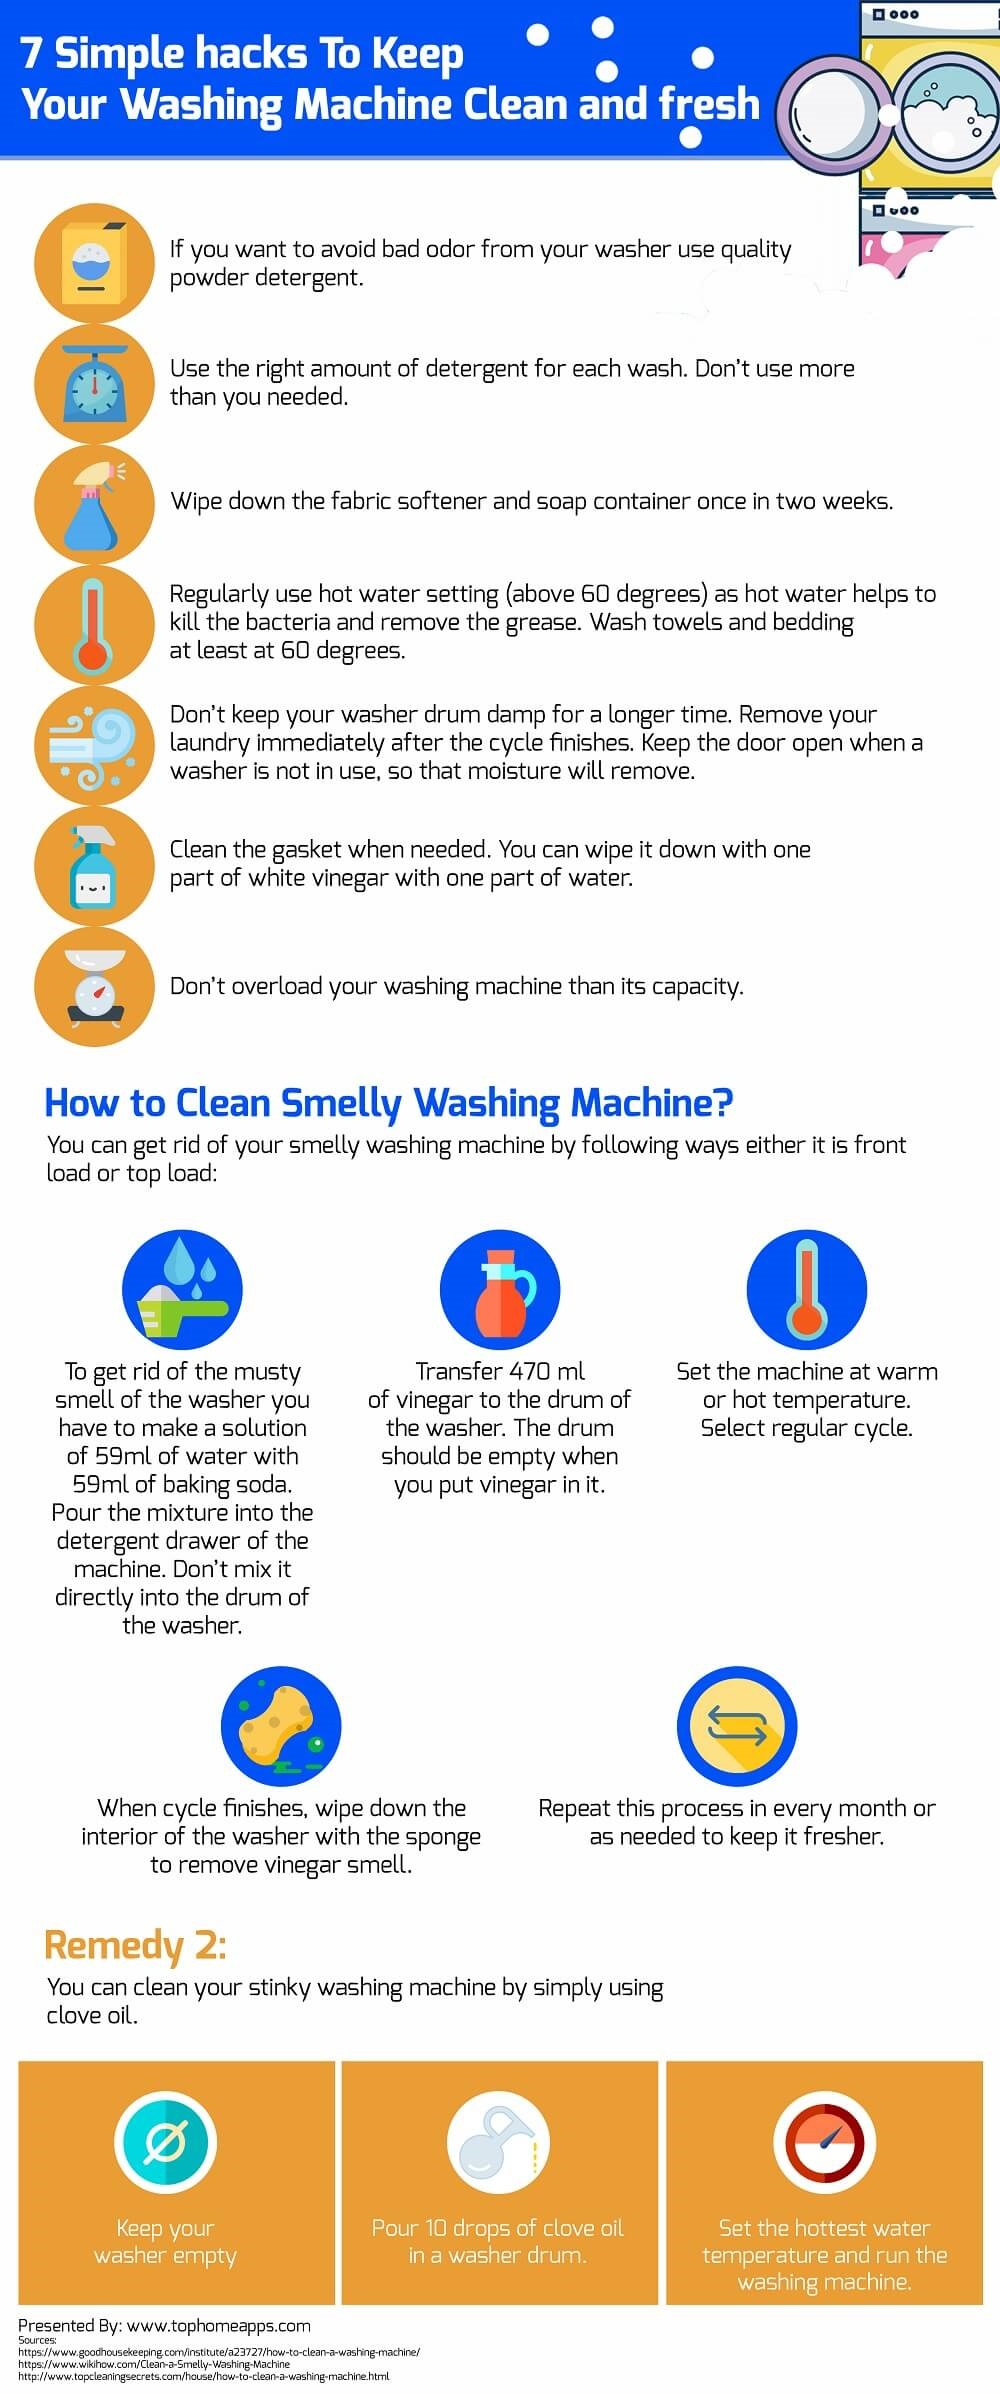 How to Clean Washing Machine Infographic